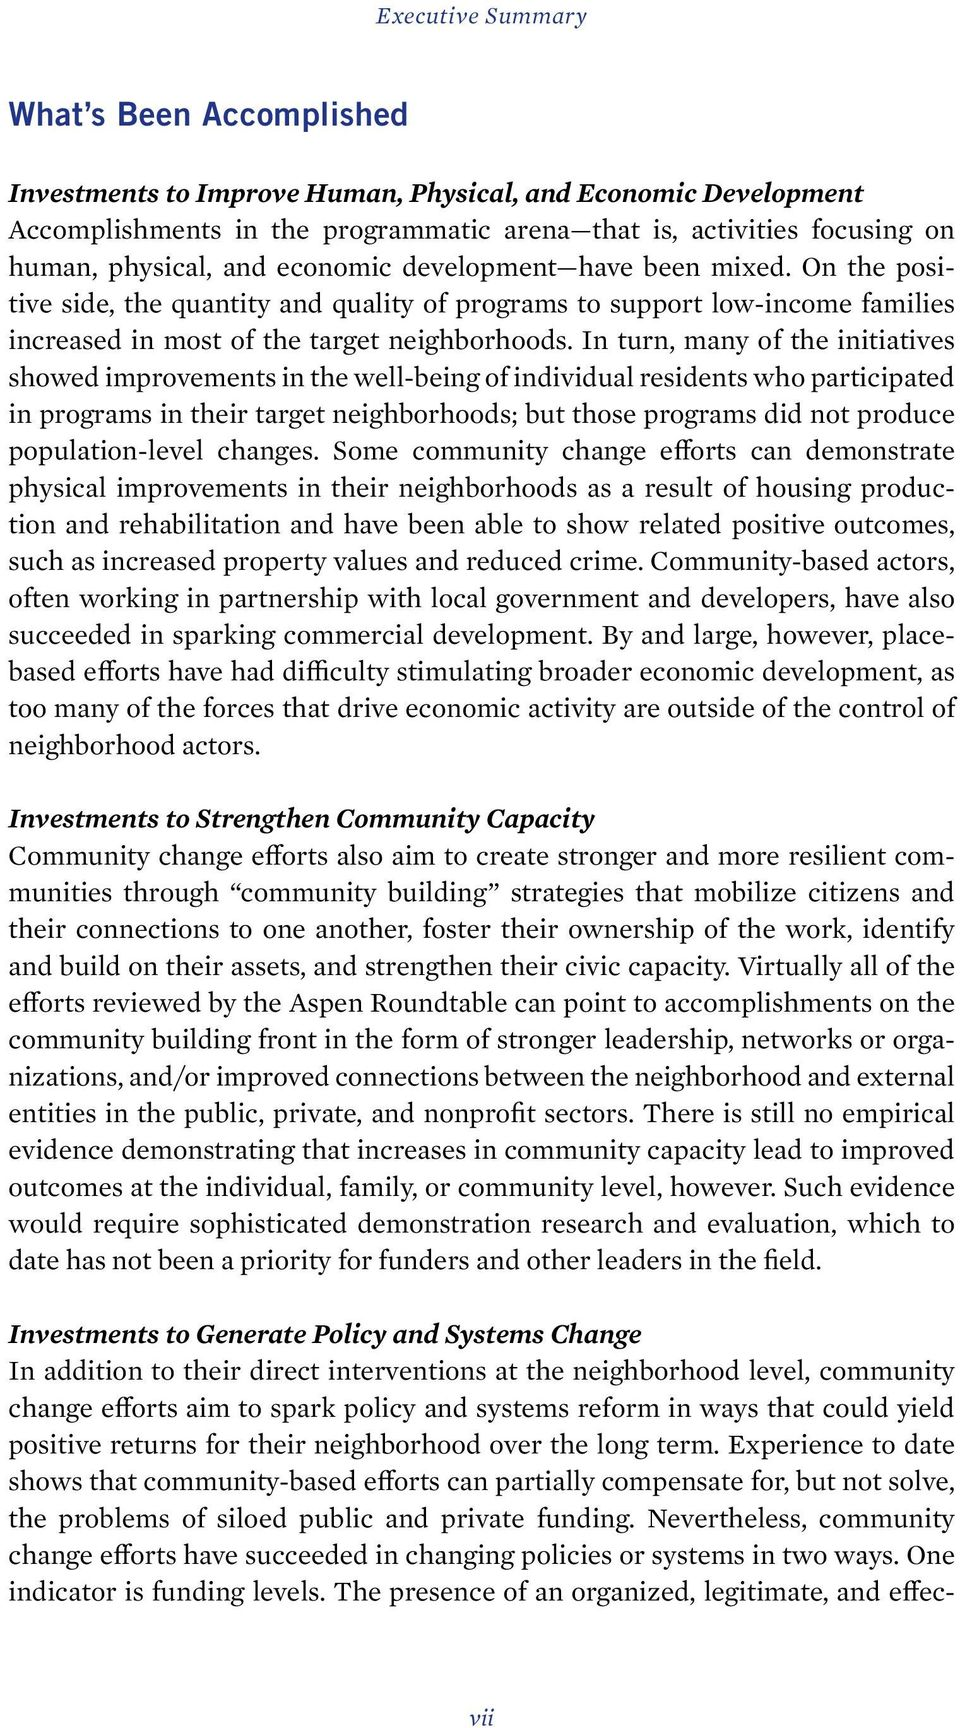 In turn, many of the initiatives showed improvements in the well-being of individual residents who participated in programs in their target neighborhoods; but those programs did not produce